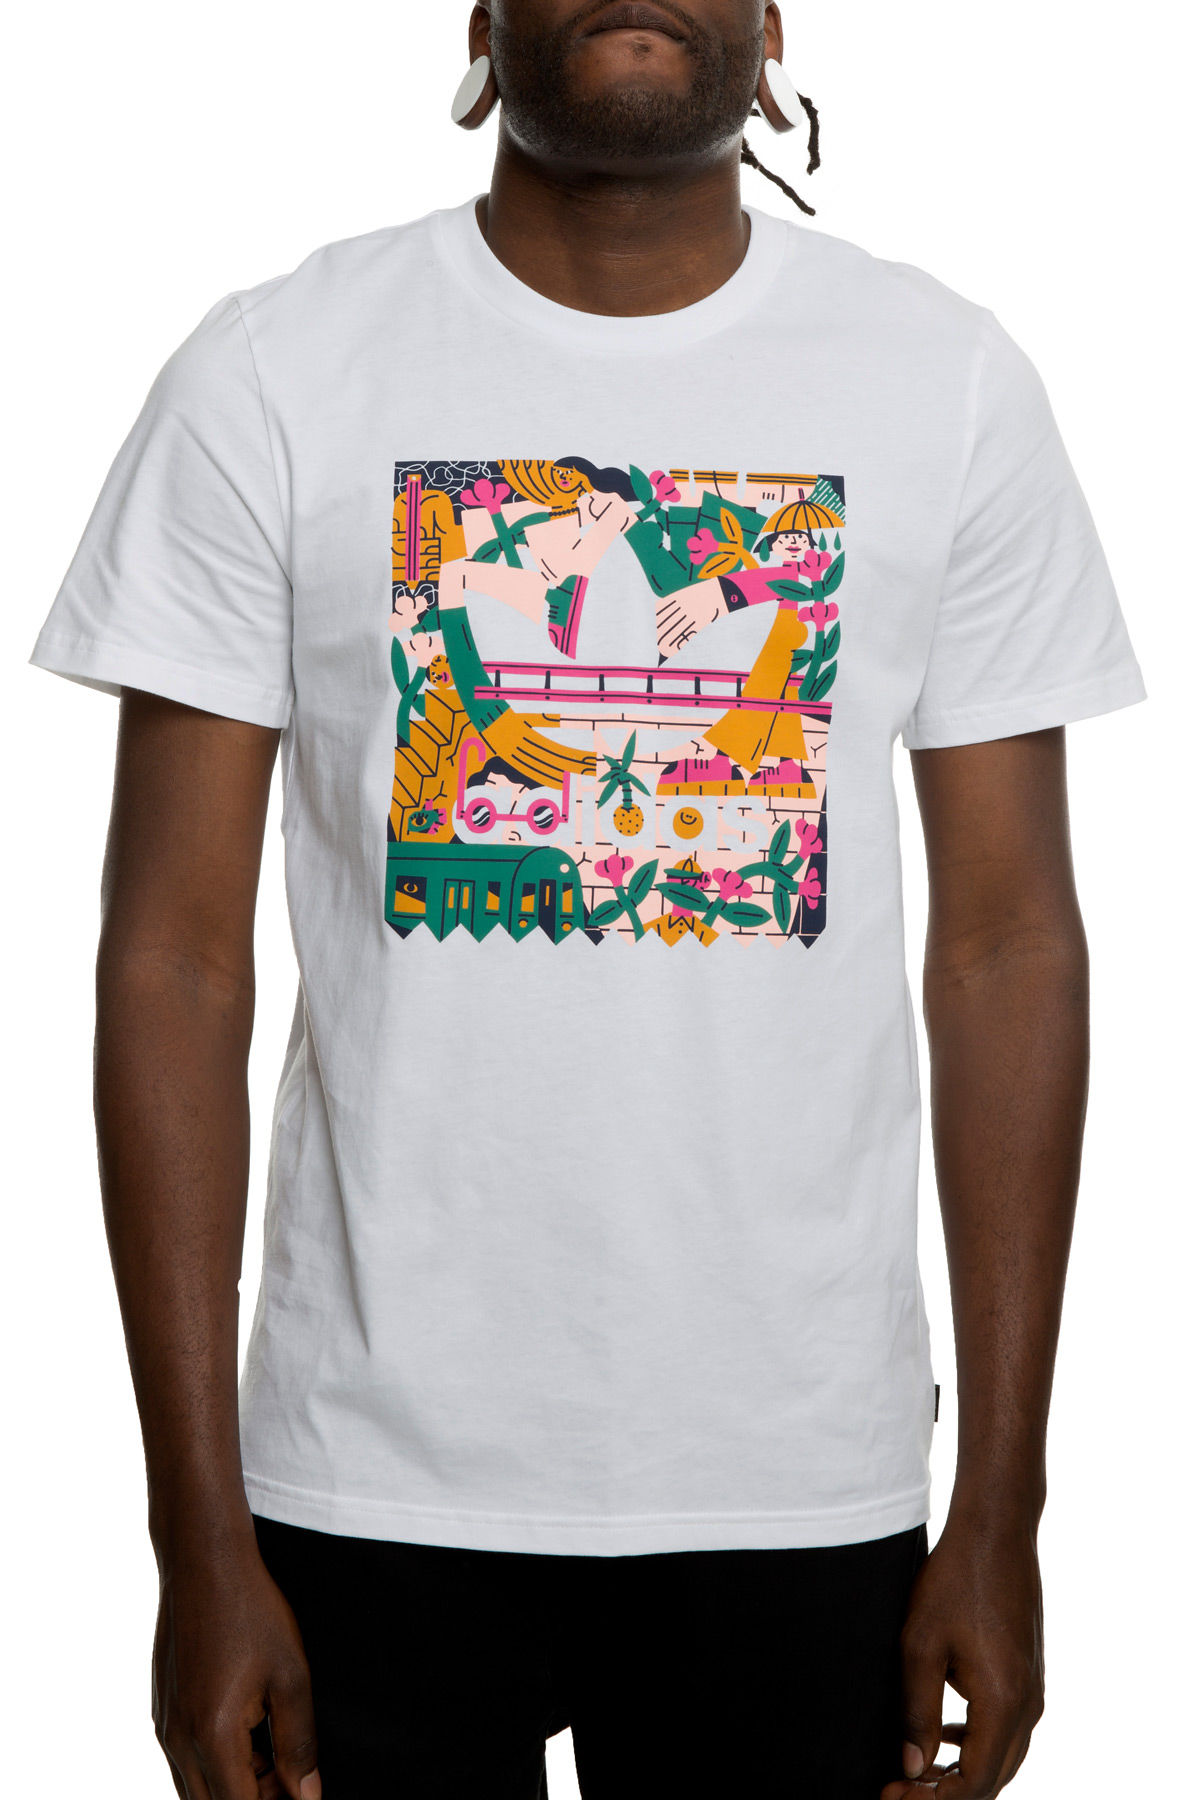 Image of Edgewood Tee in White and Pink